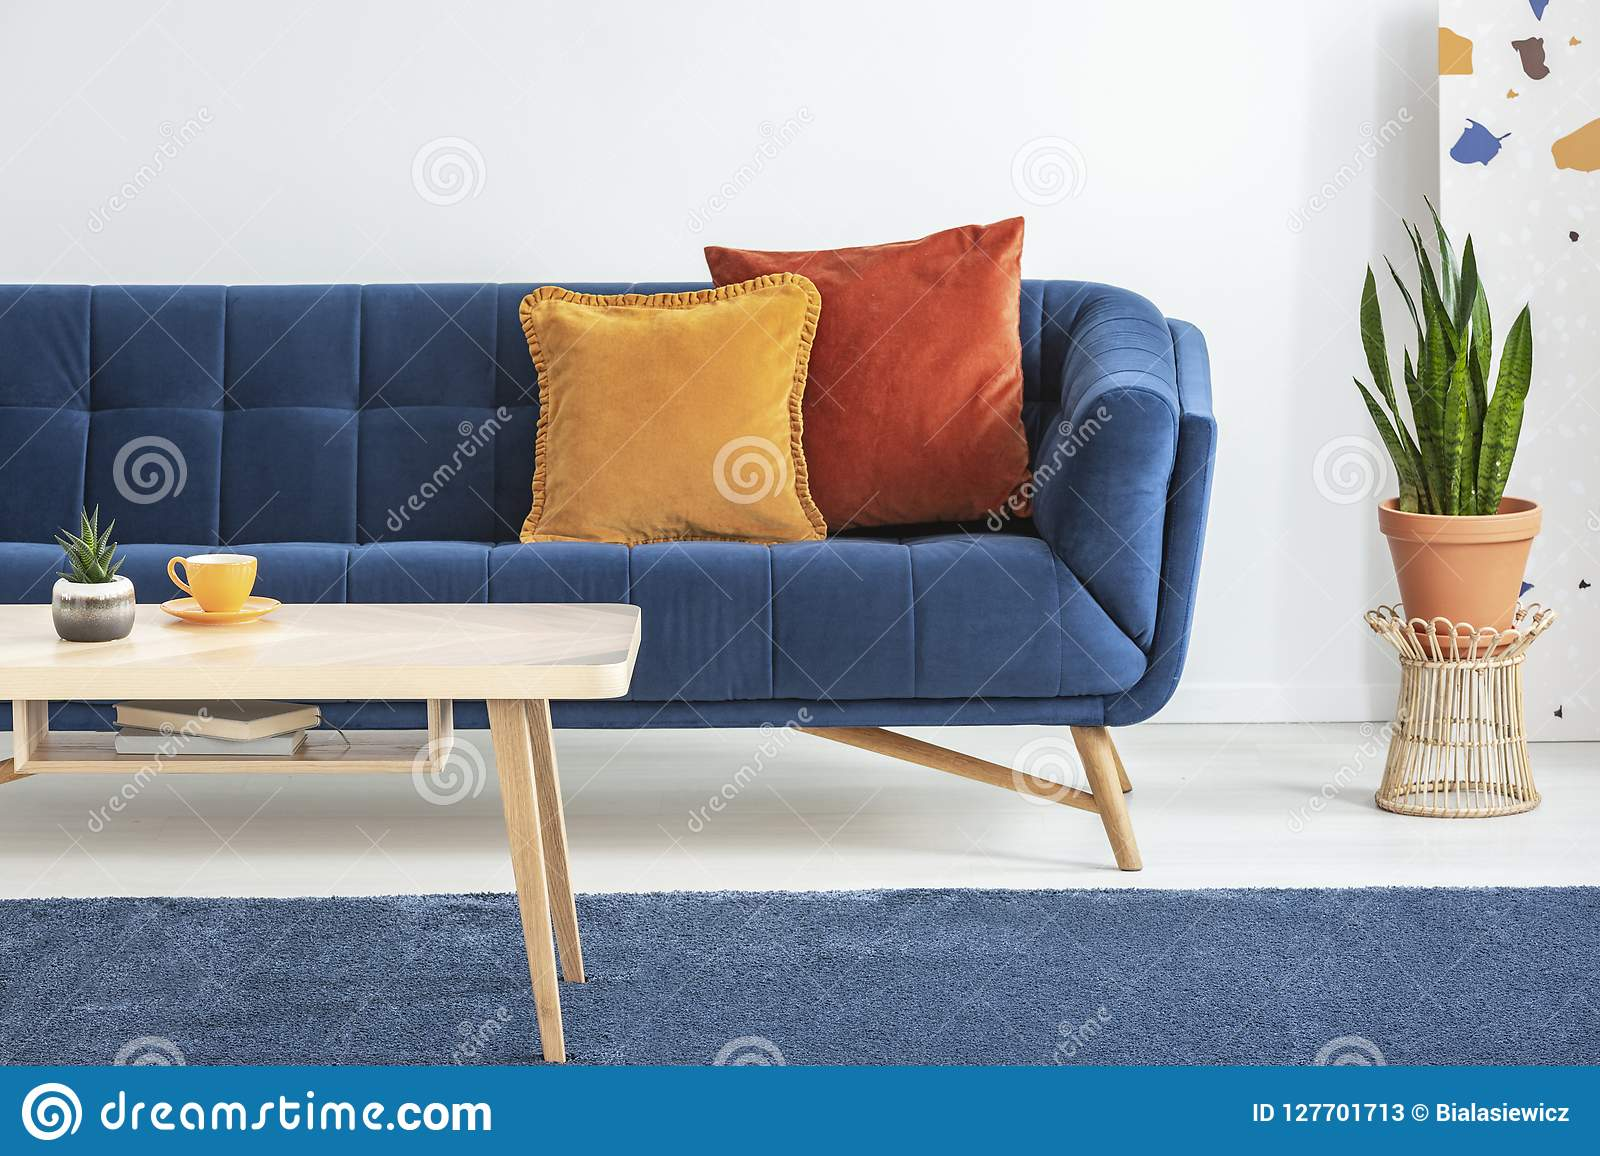 https www dreamstime com orange red cushions fancy navy blue sofa basic wooden coffee table rug white living room interior peony real photo image127701713